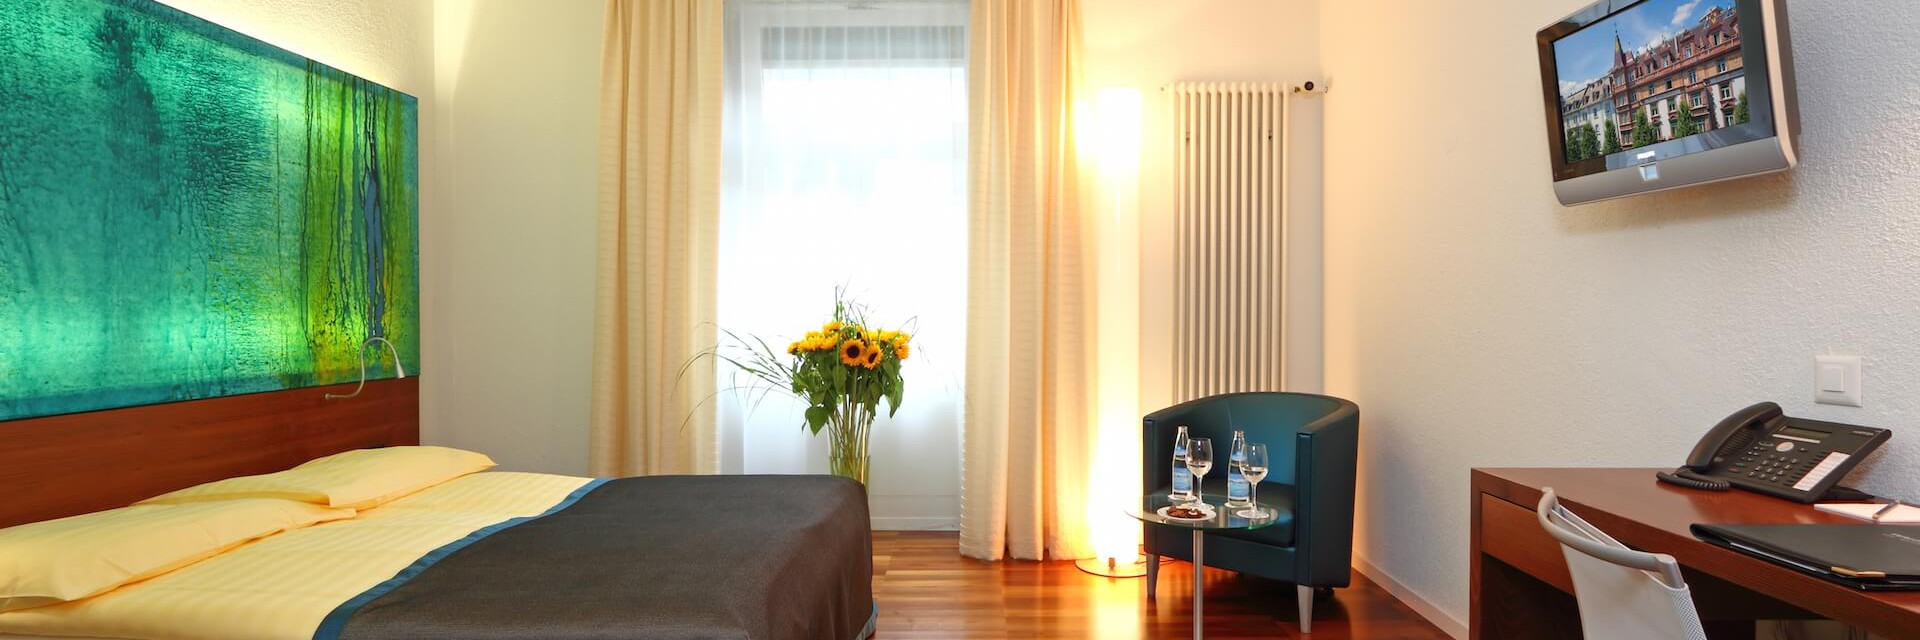 Rooms And Suites At Hotel Waldstätterhof Lucerne.